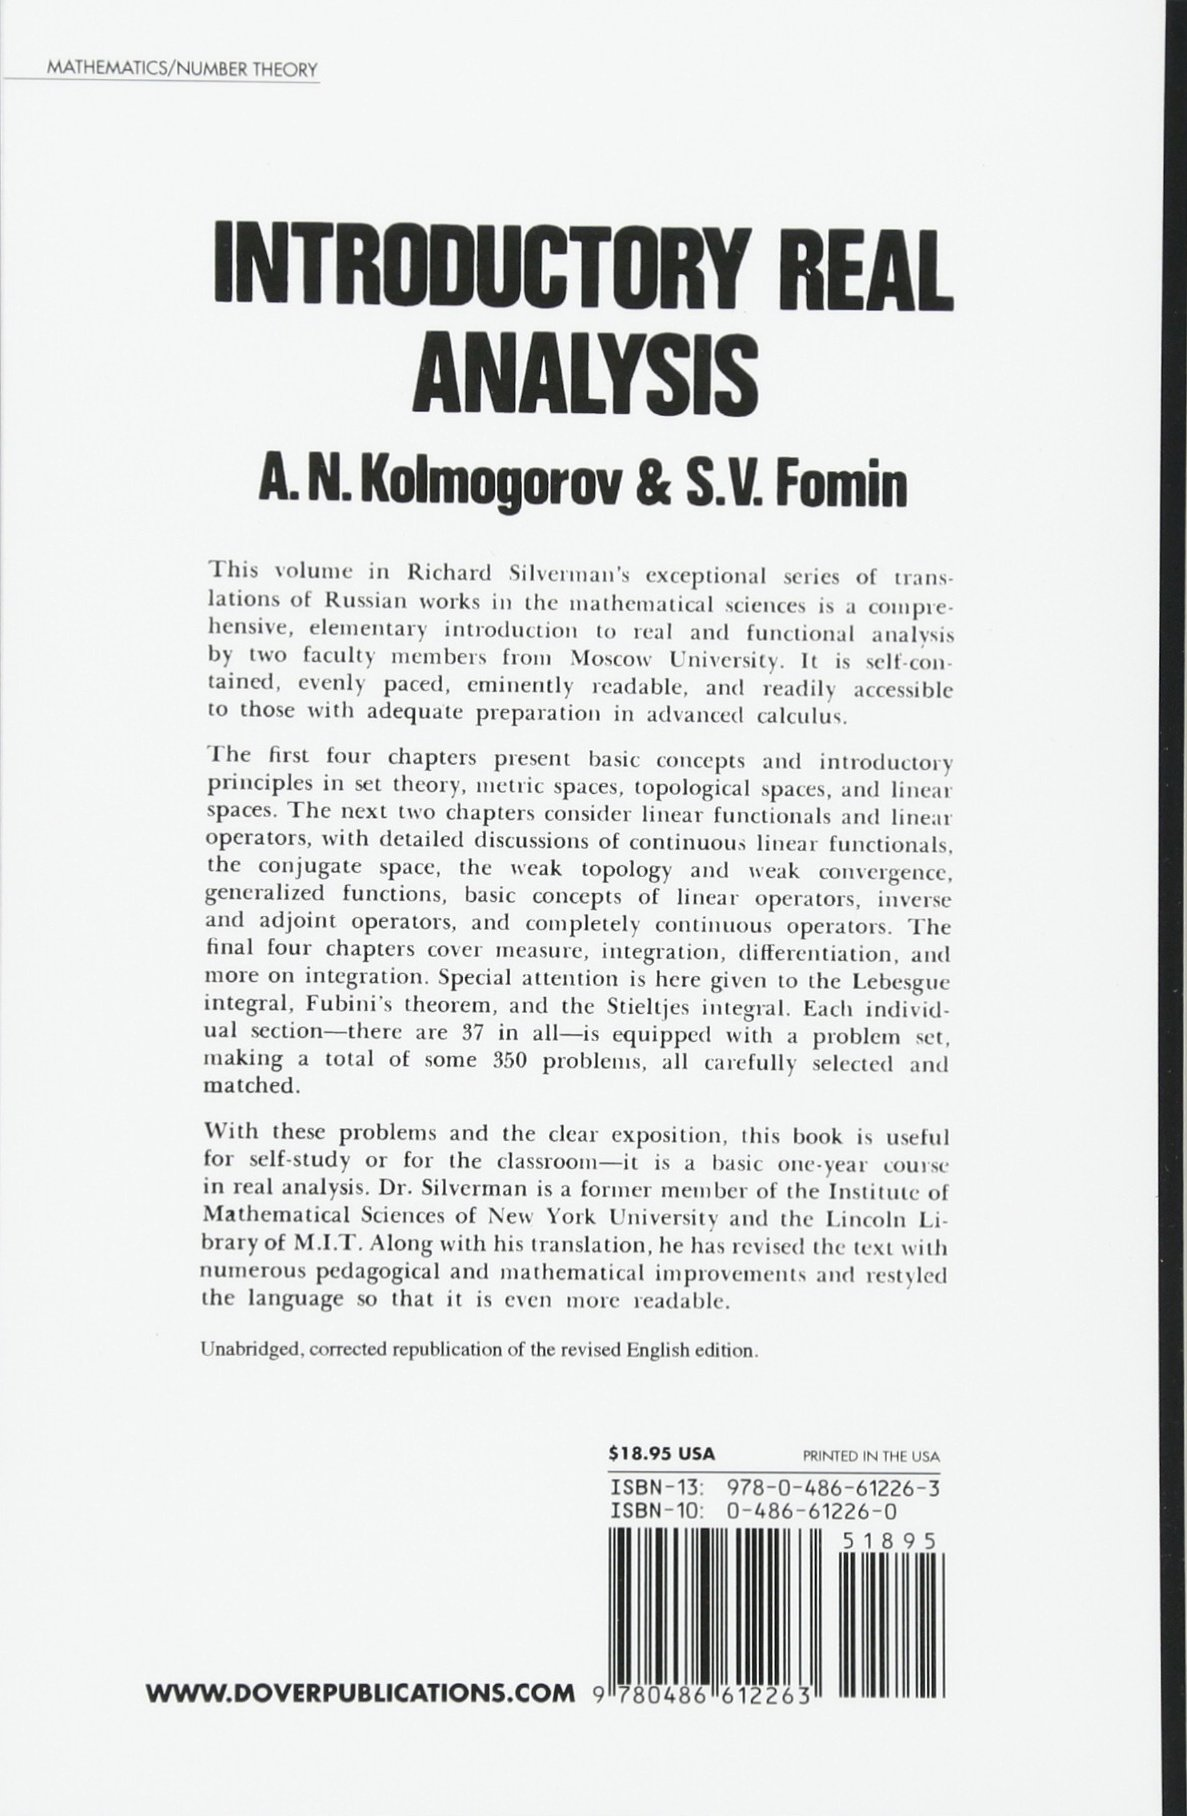 Buy introductory real analysis dover books on mathematics book buy introductory real analysis dover books on mathematics book online at low prices in india introductory real analysis dover books on mathematics fandeluxe Gallery